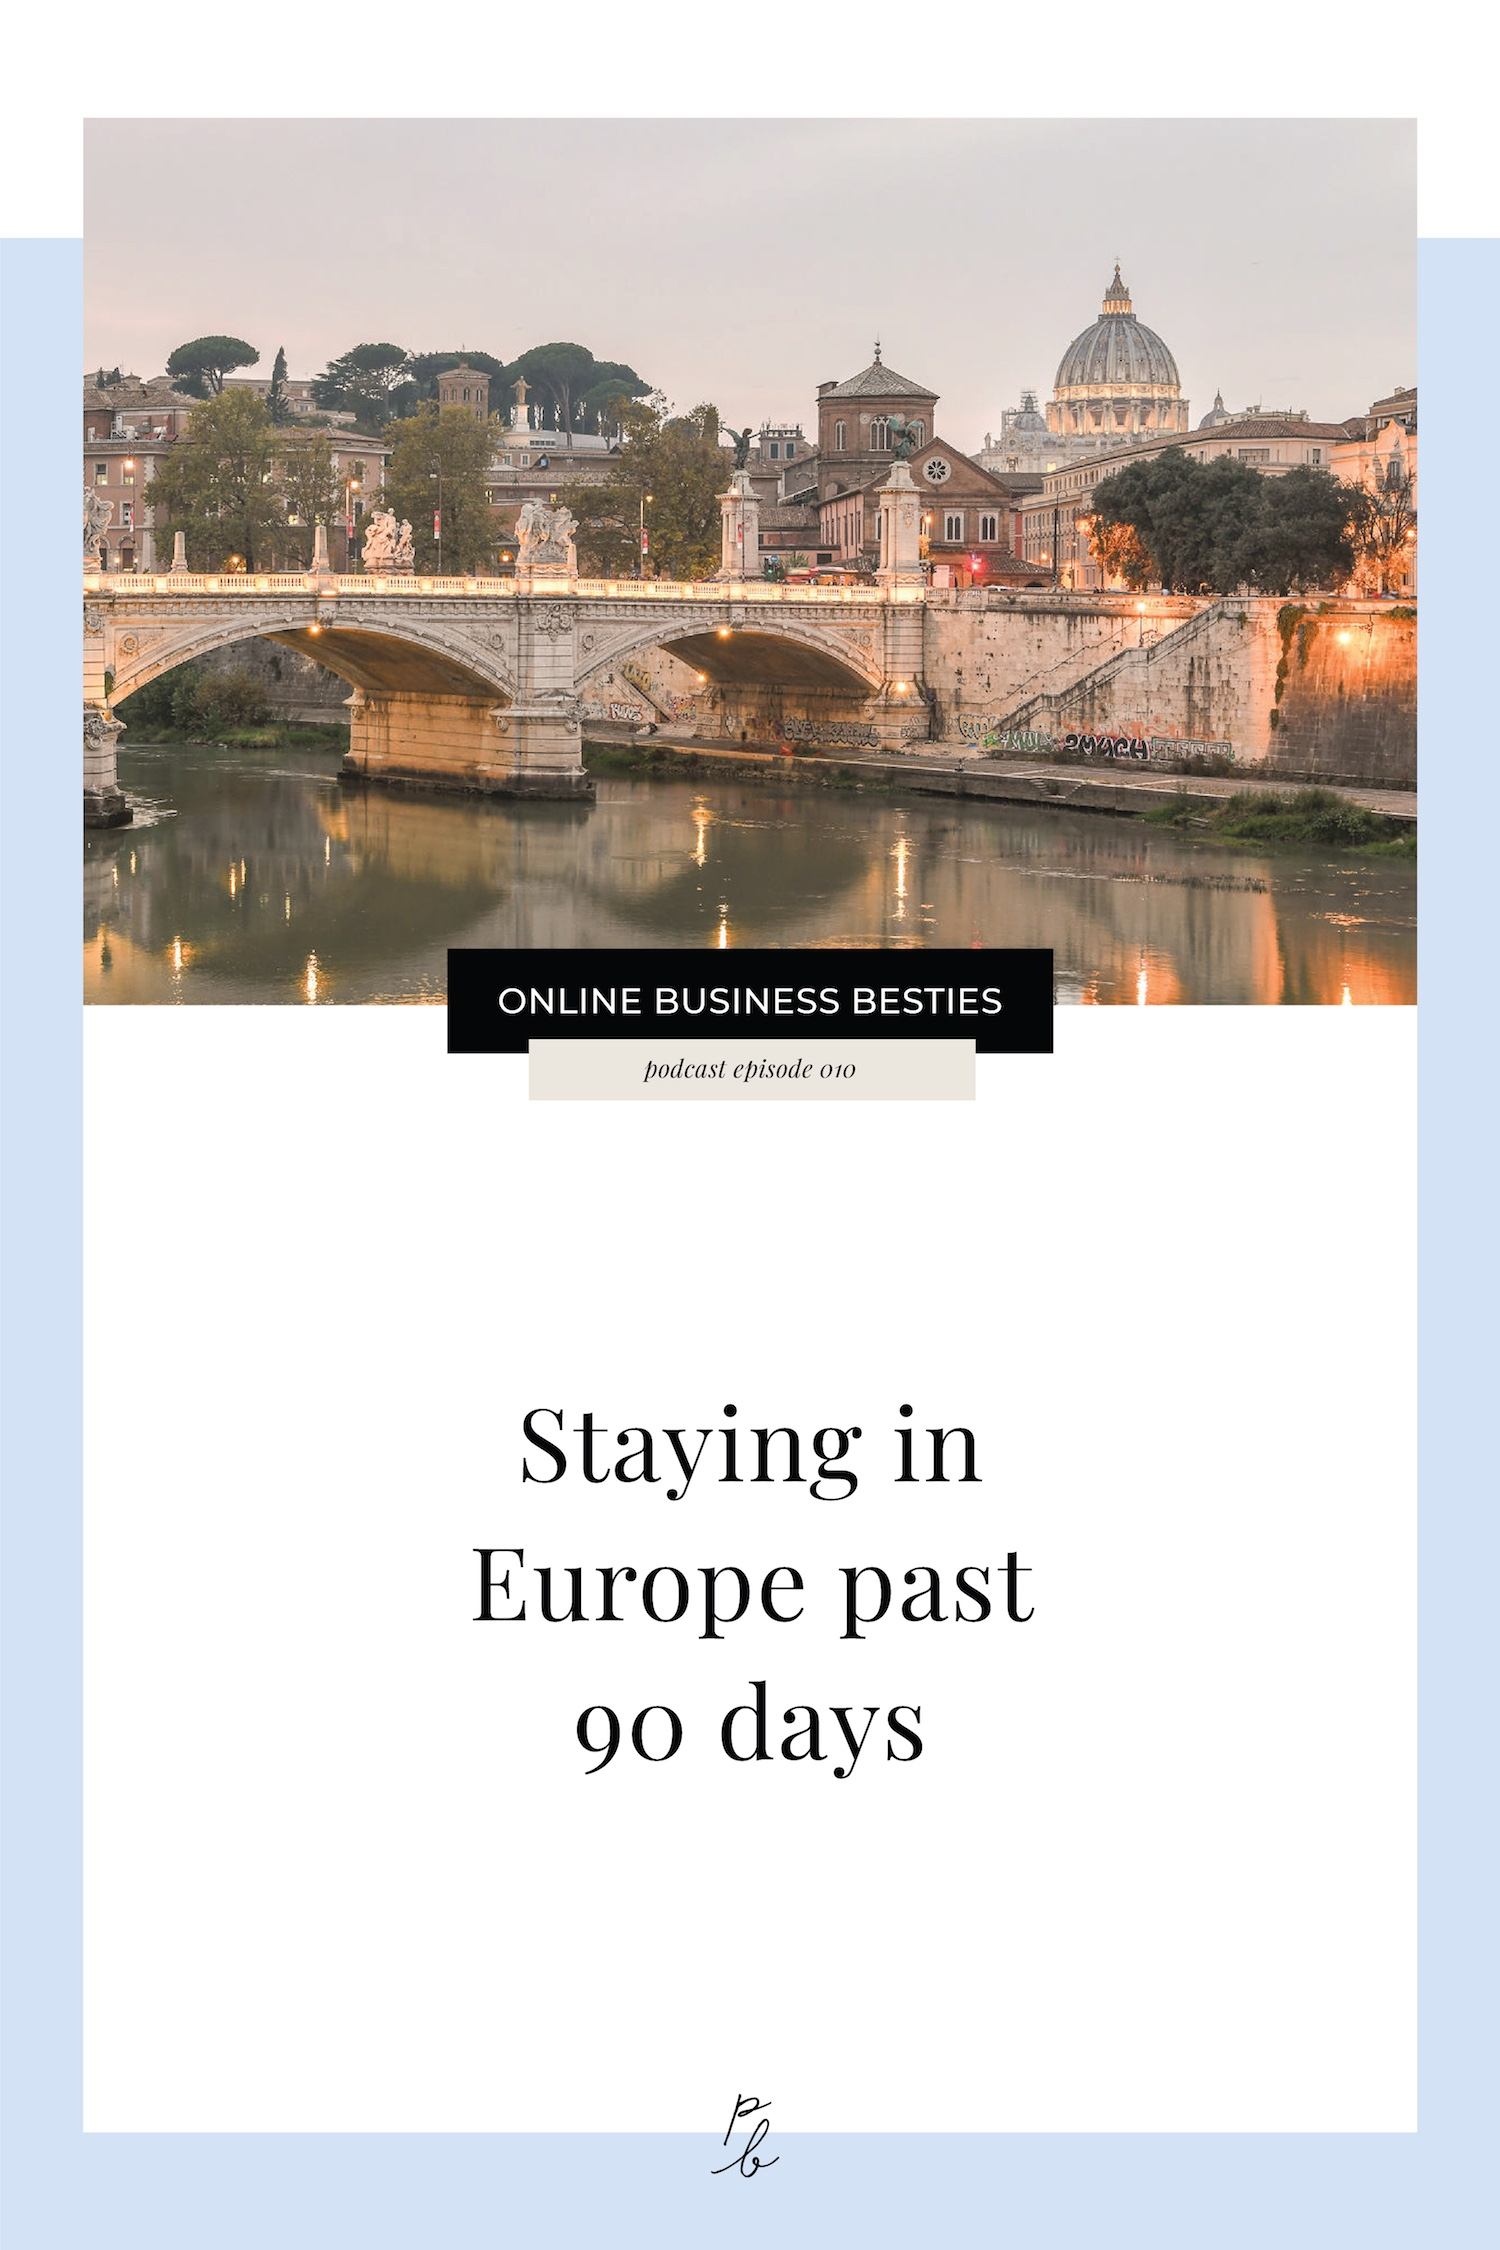 010 Staying in Europe Past 90 Days - The Online business besties's podcast.jpeg